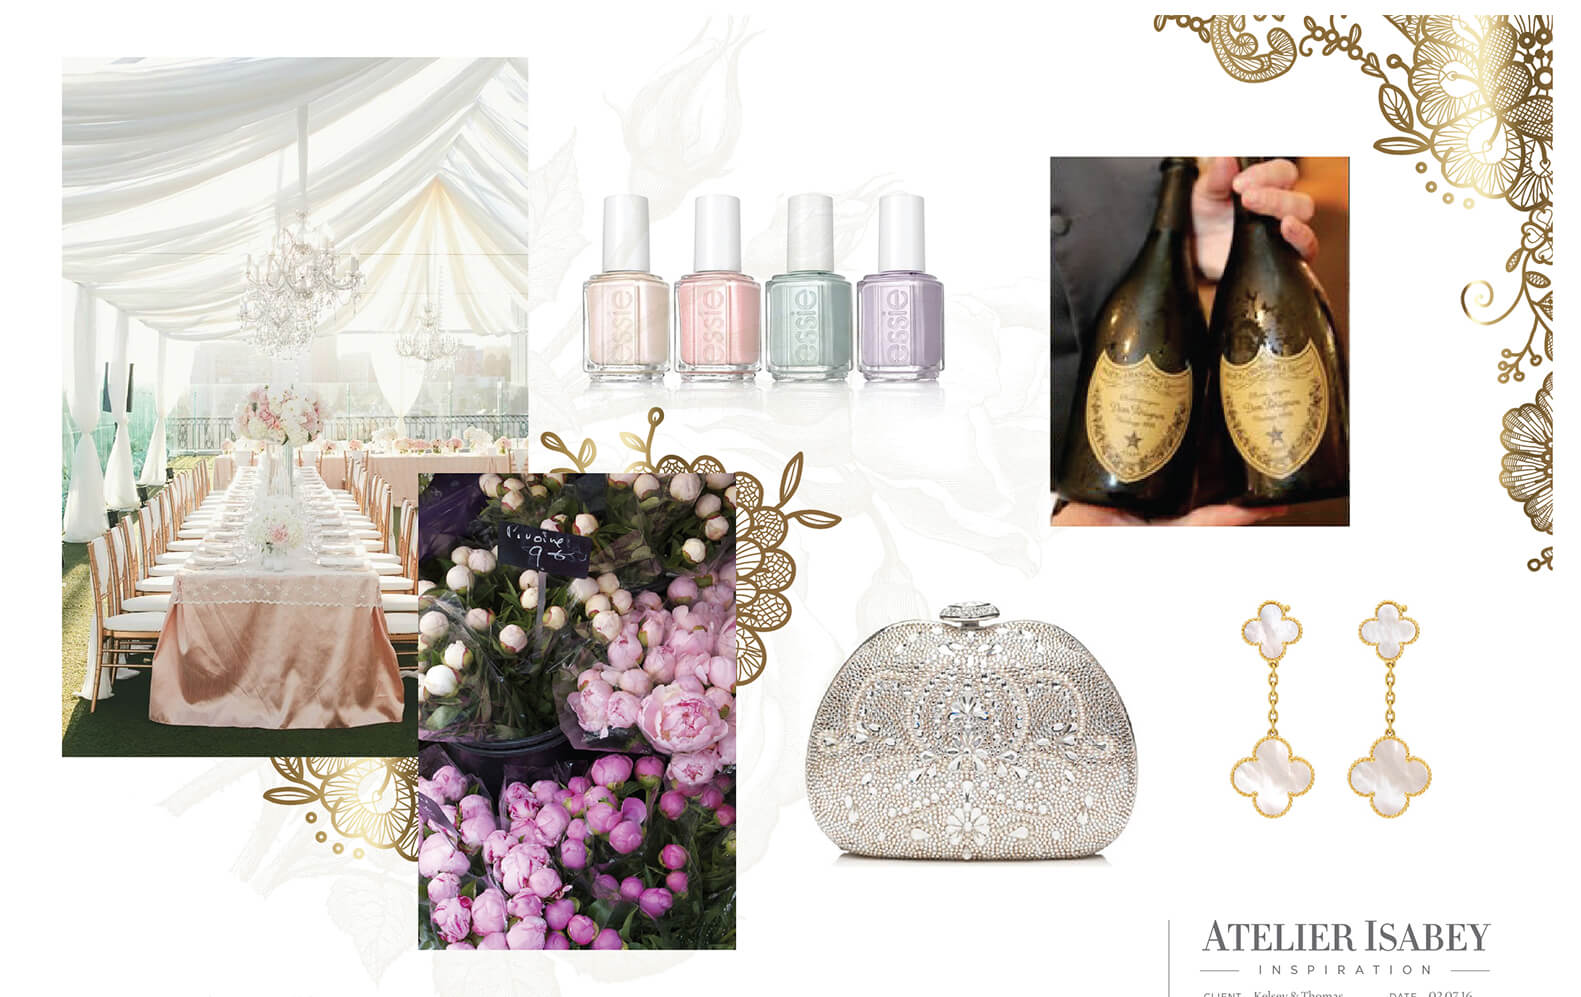 Peonies, jeweled clutch, champagne and other inspiration